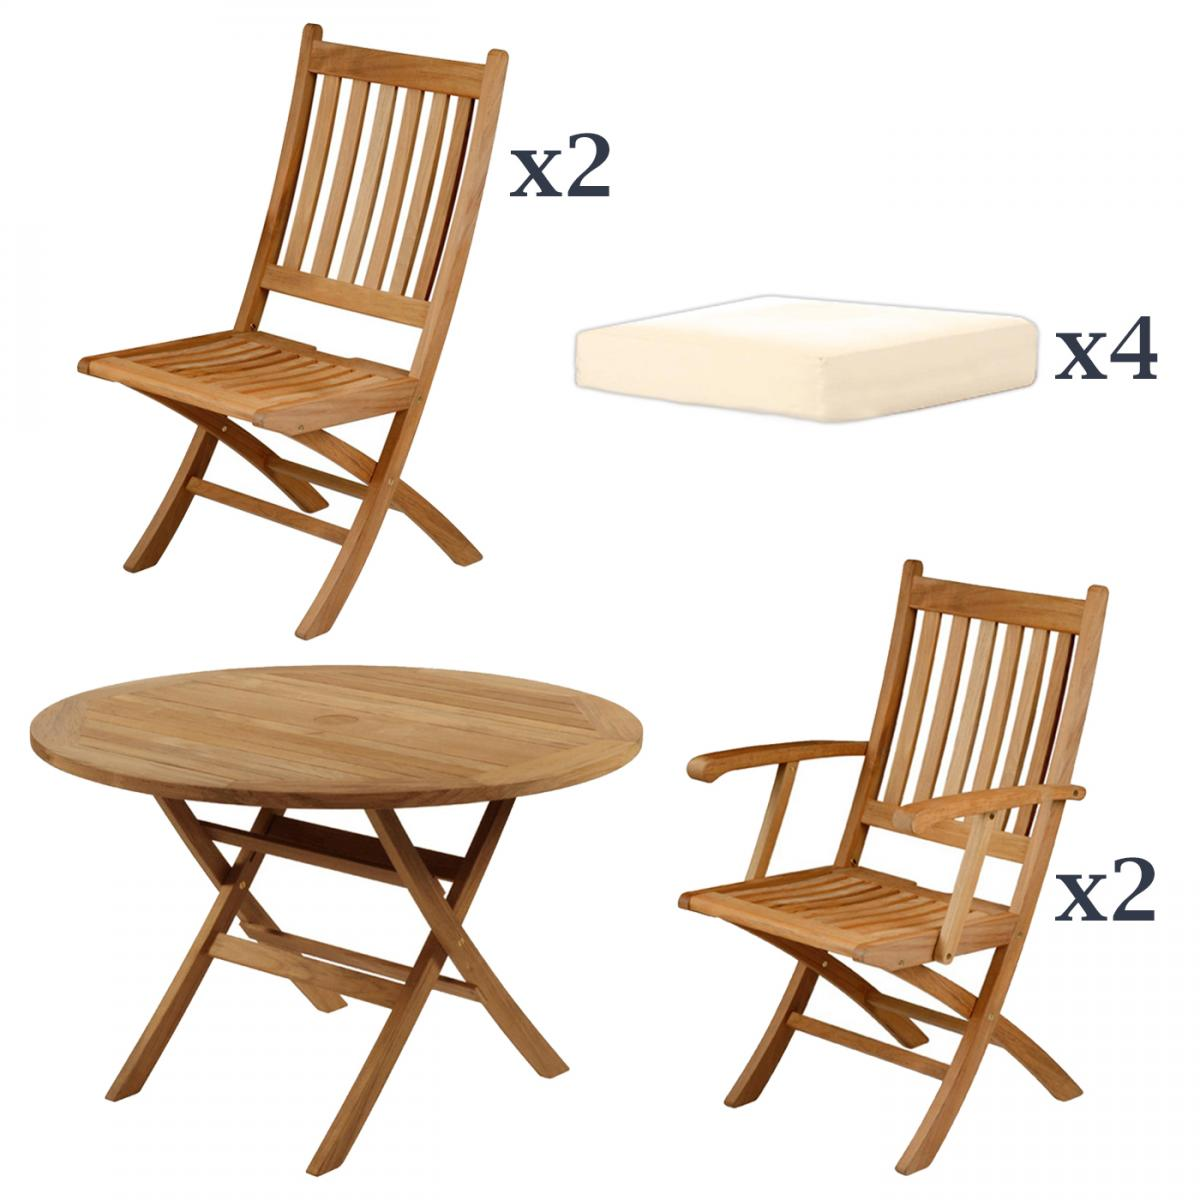 View The Full Image Clifton Nurseries Barlow Tyrie Ascot Teak Dinind Set  Garden Furniture Included